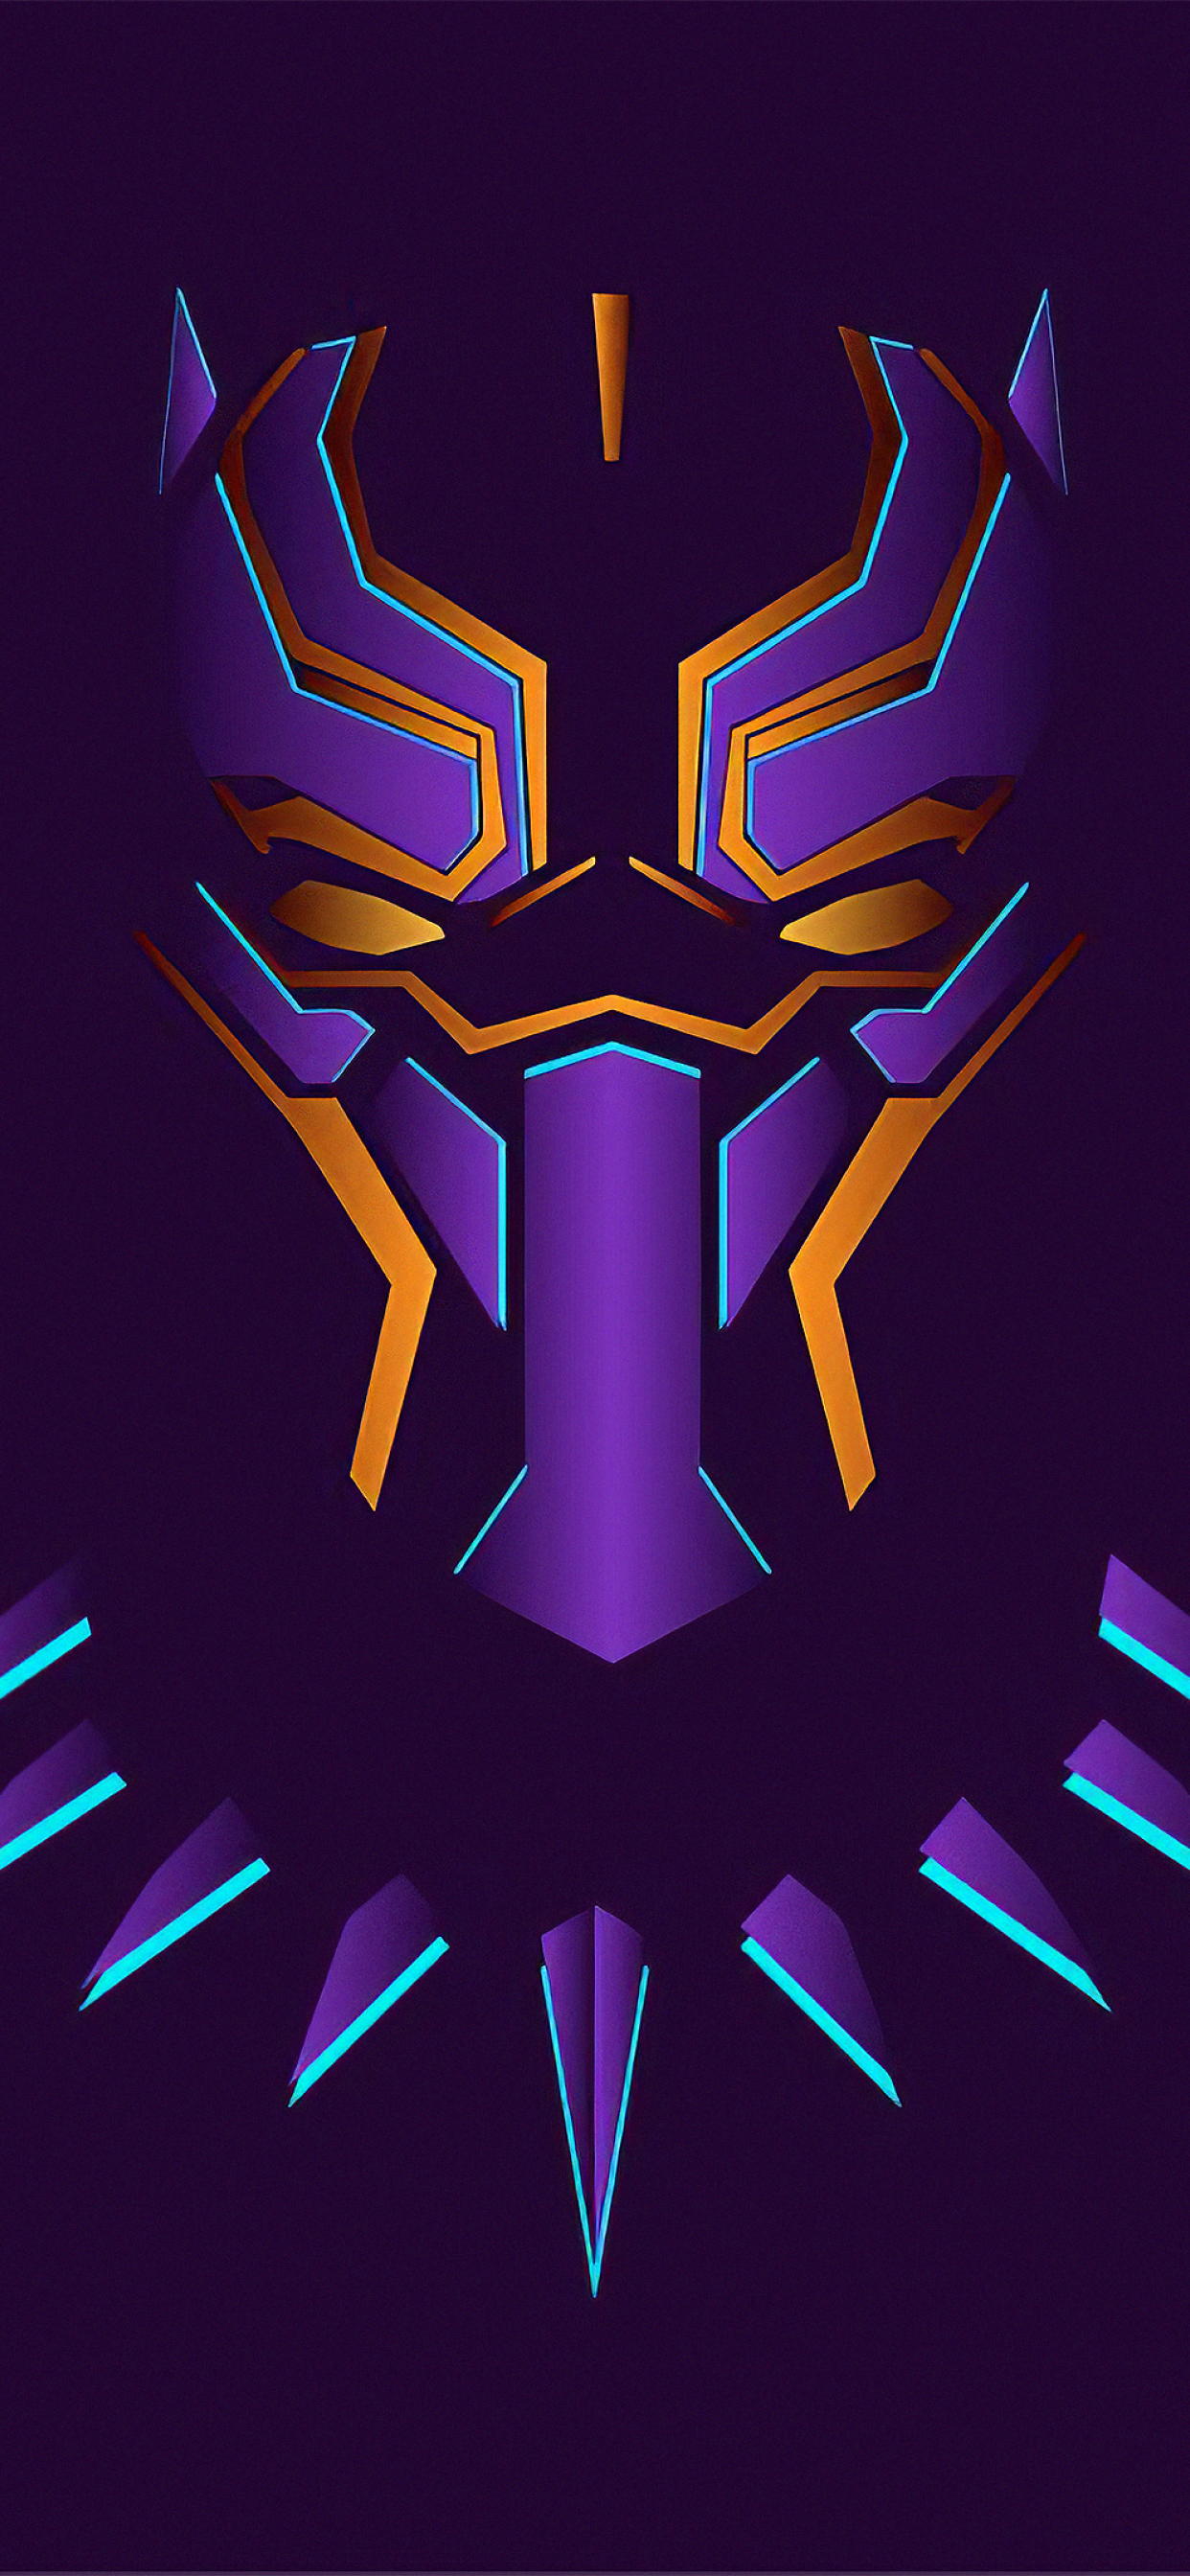 1242x2688 New Black Panther Minimalist Iphone Xs Max Wallpaper Hd Minimalist 4k Wallpapers Images Photos And Background